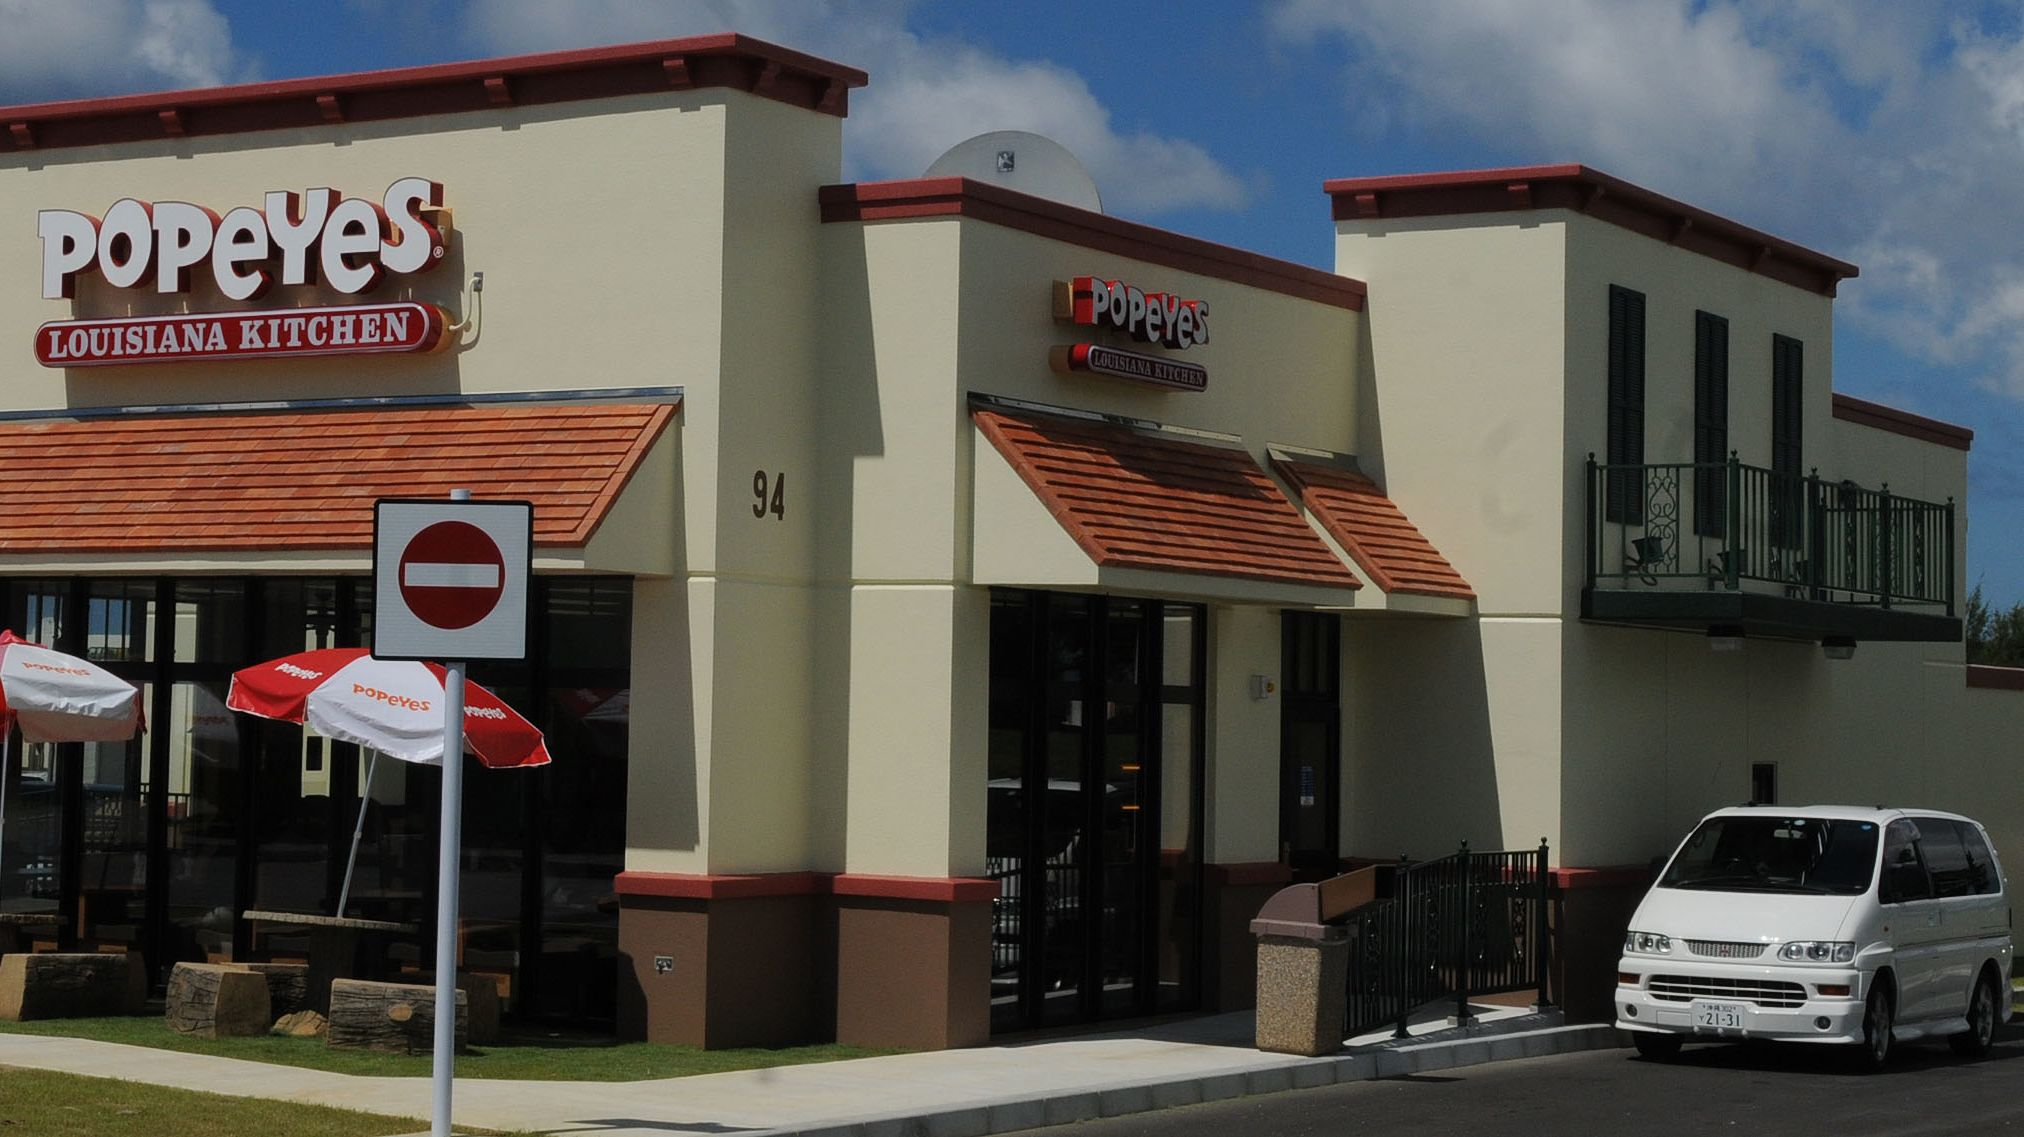 The Reason Popeyes Restaurants Have a Balcony Over the Drive-Thru